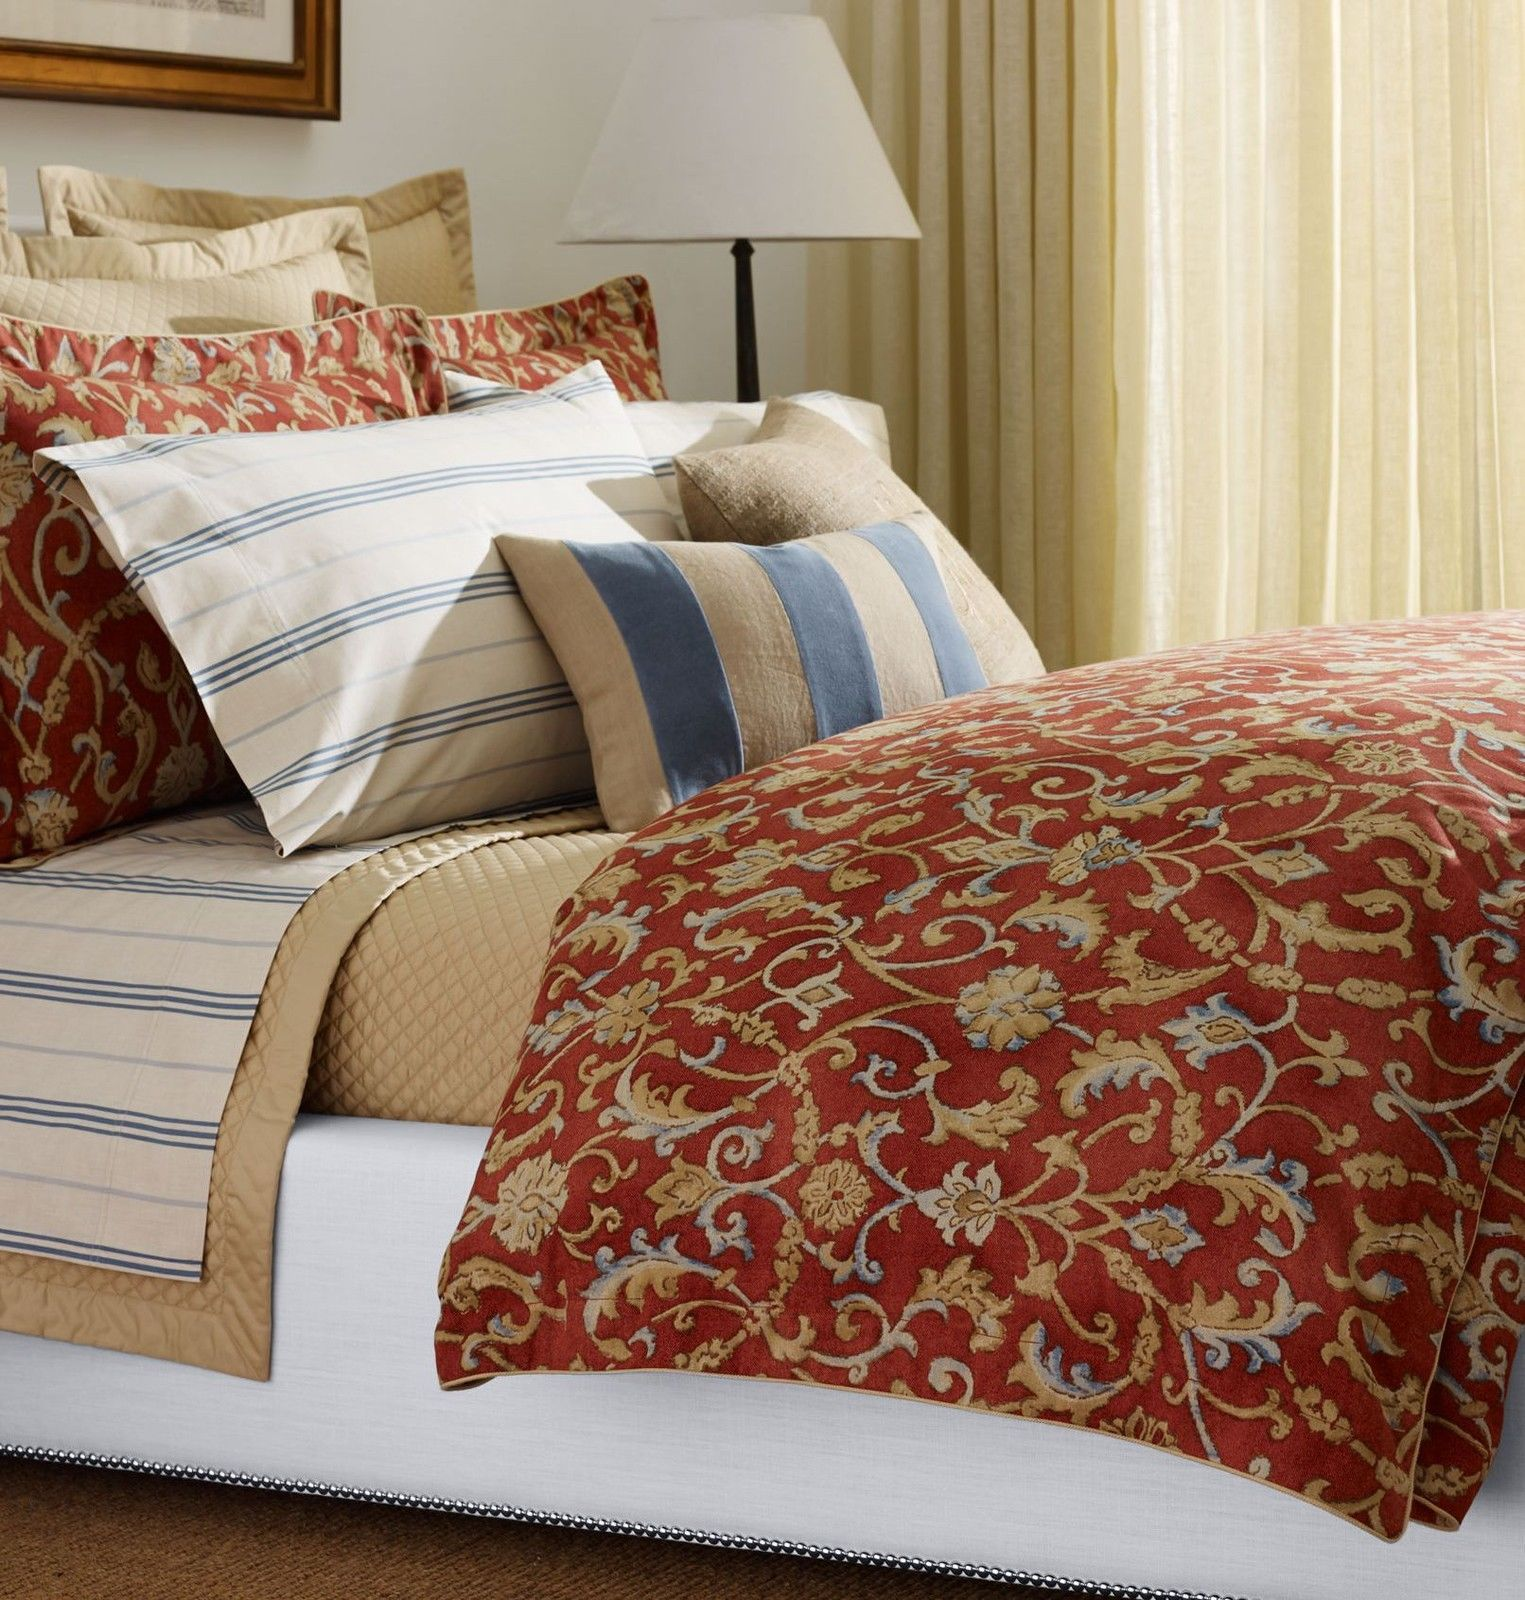 bedspreads comforter sheets shower bear size lauren clearance full discount and sets of linen curtain polo set king paisley queen cover ralph bedding navy duvet white